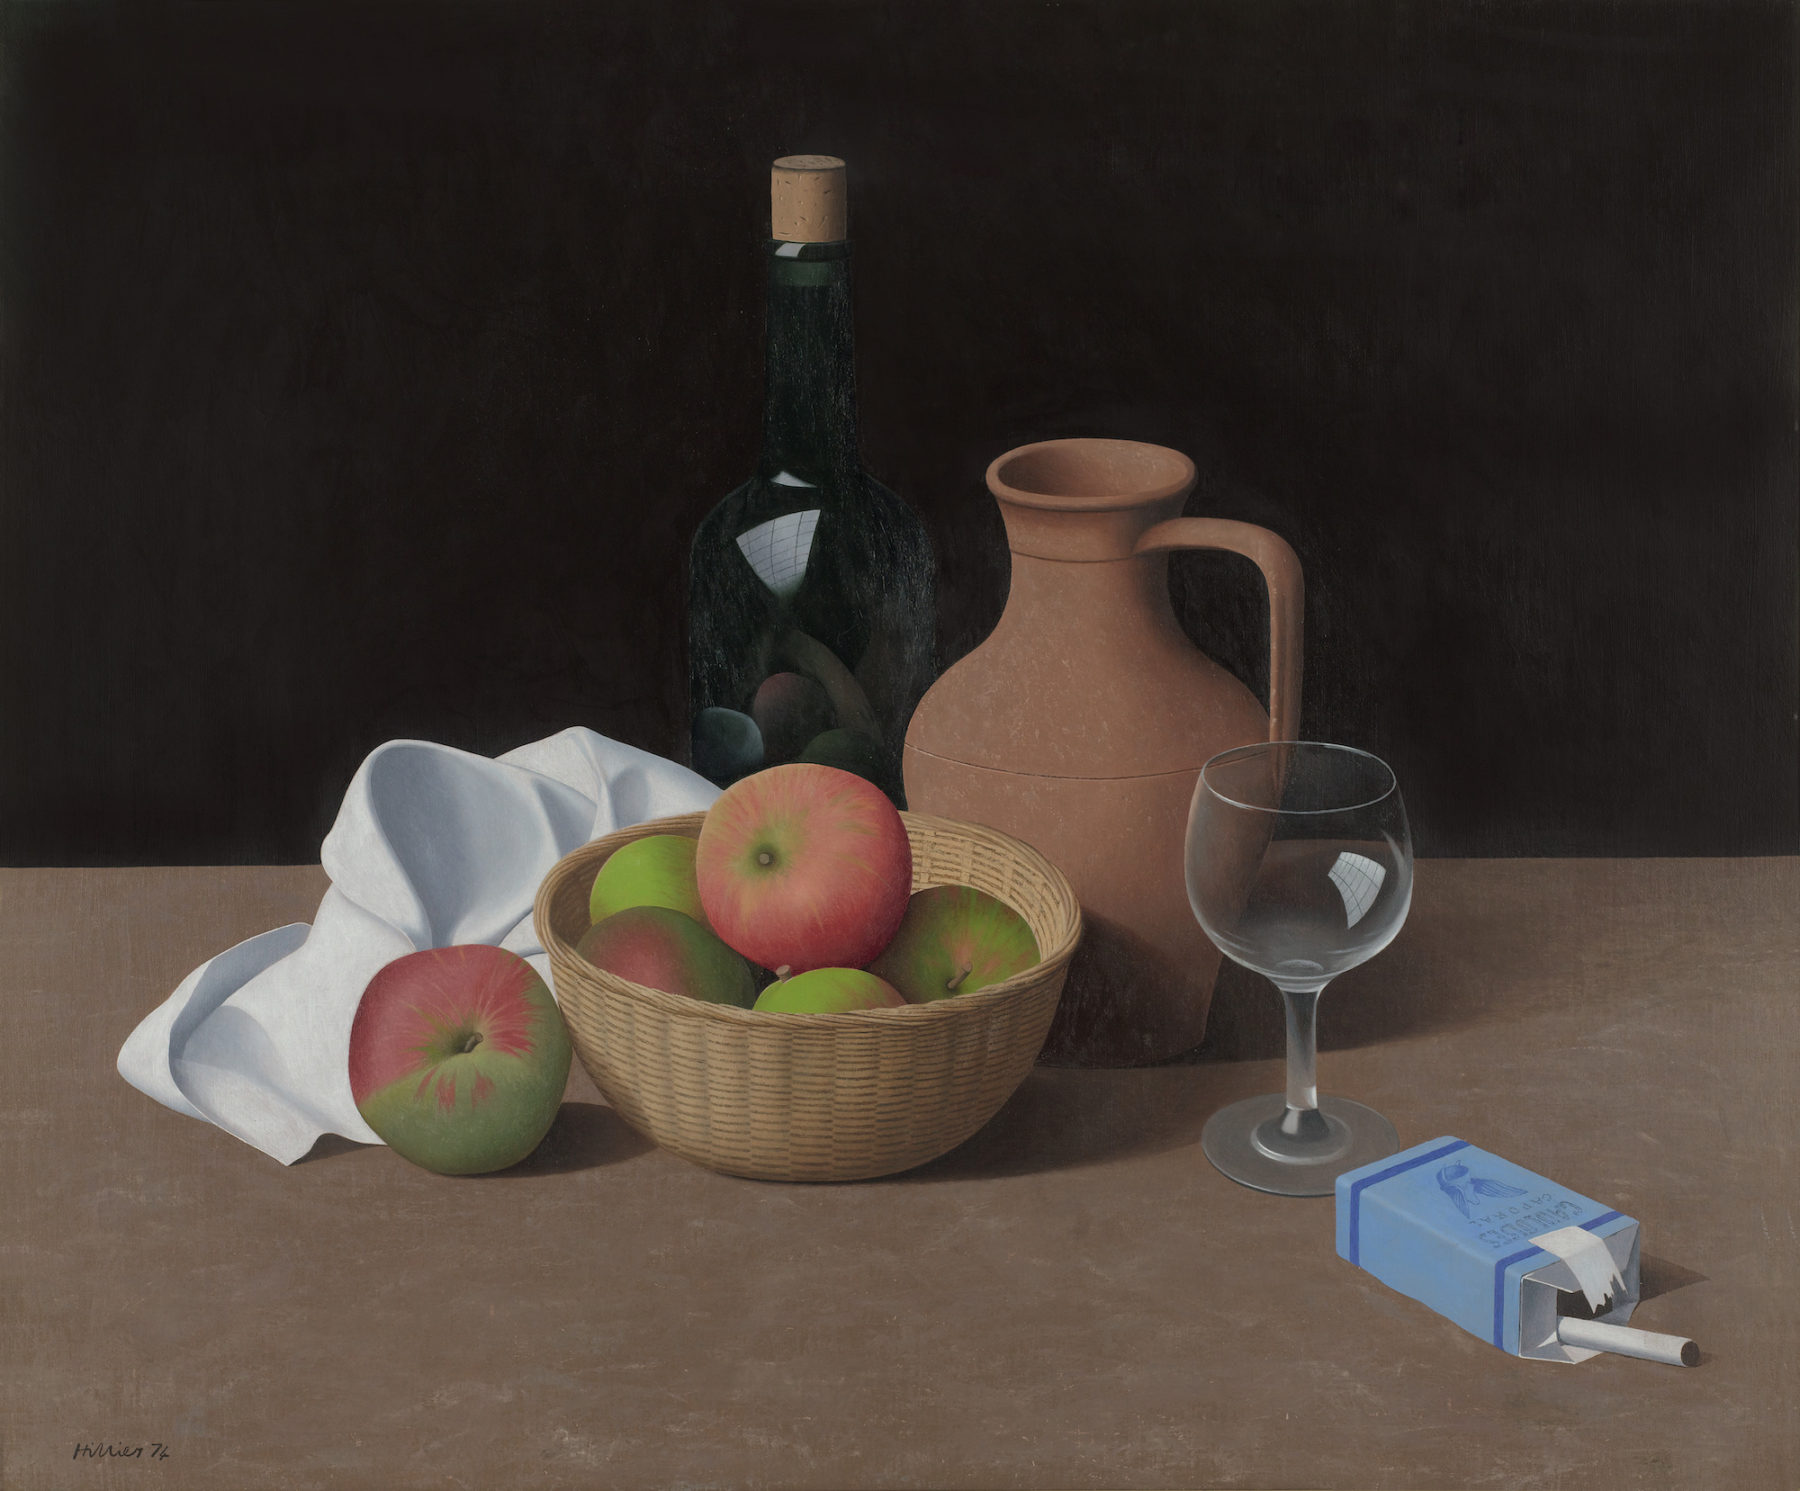 An assortment of objects form a still life composition on top of a wooden shelf against a pitch black backdrop. The objects are a scrunched up white napkin, a light brown woven bowl of red-green apples (one of which has fallen out and sits next to the napkin), a dark green cork bottle, a brown earthenware jug, a wine glass, and an open blue packet of cigarettes with one cigarette poking out of the top.